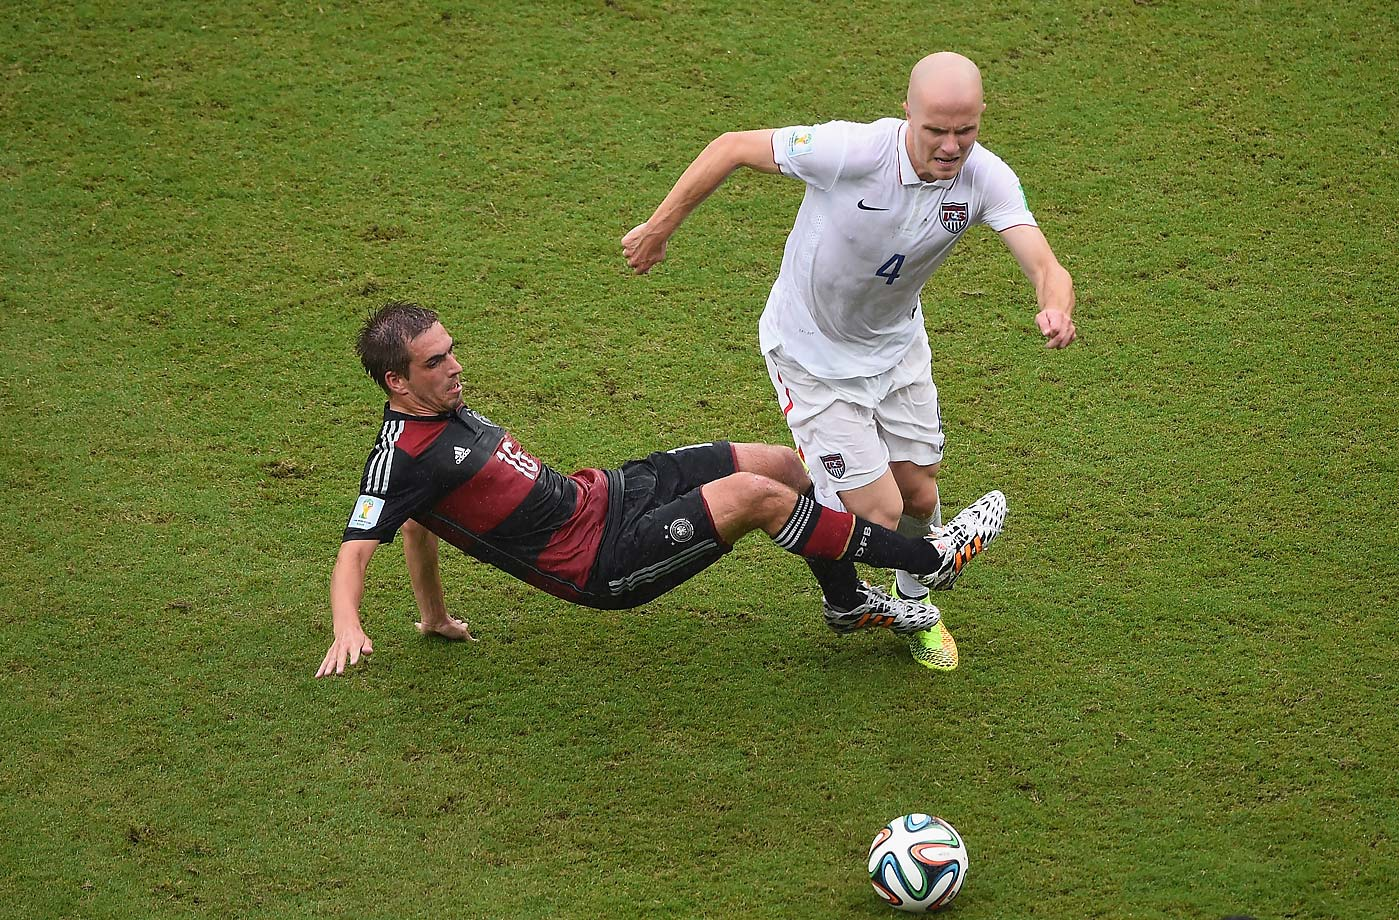 Michael Bradley didn't have the best of games but didn't make any costly mistakes either.